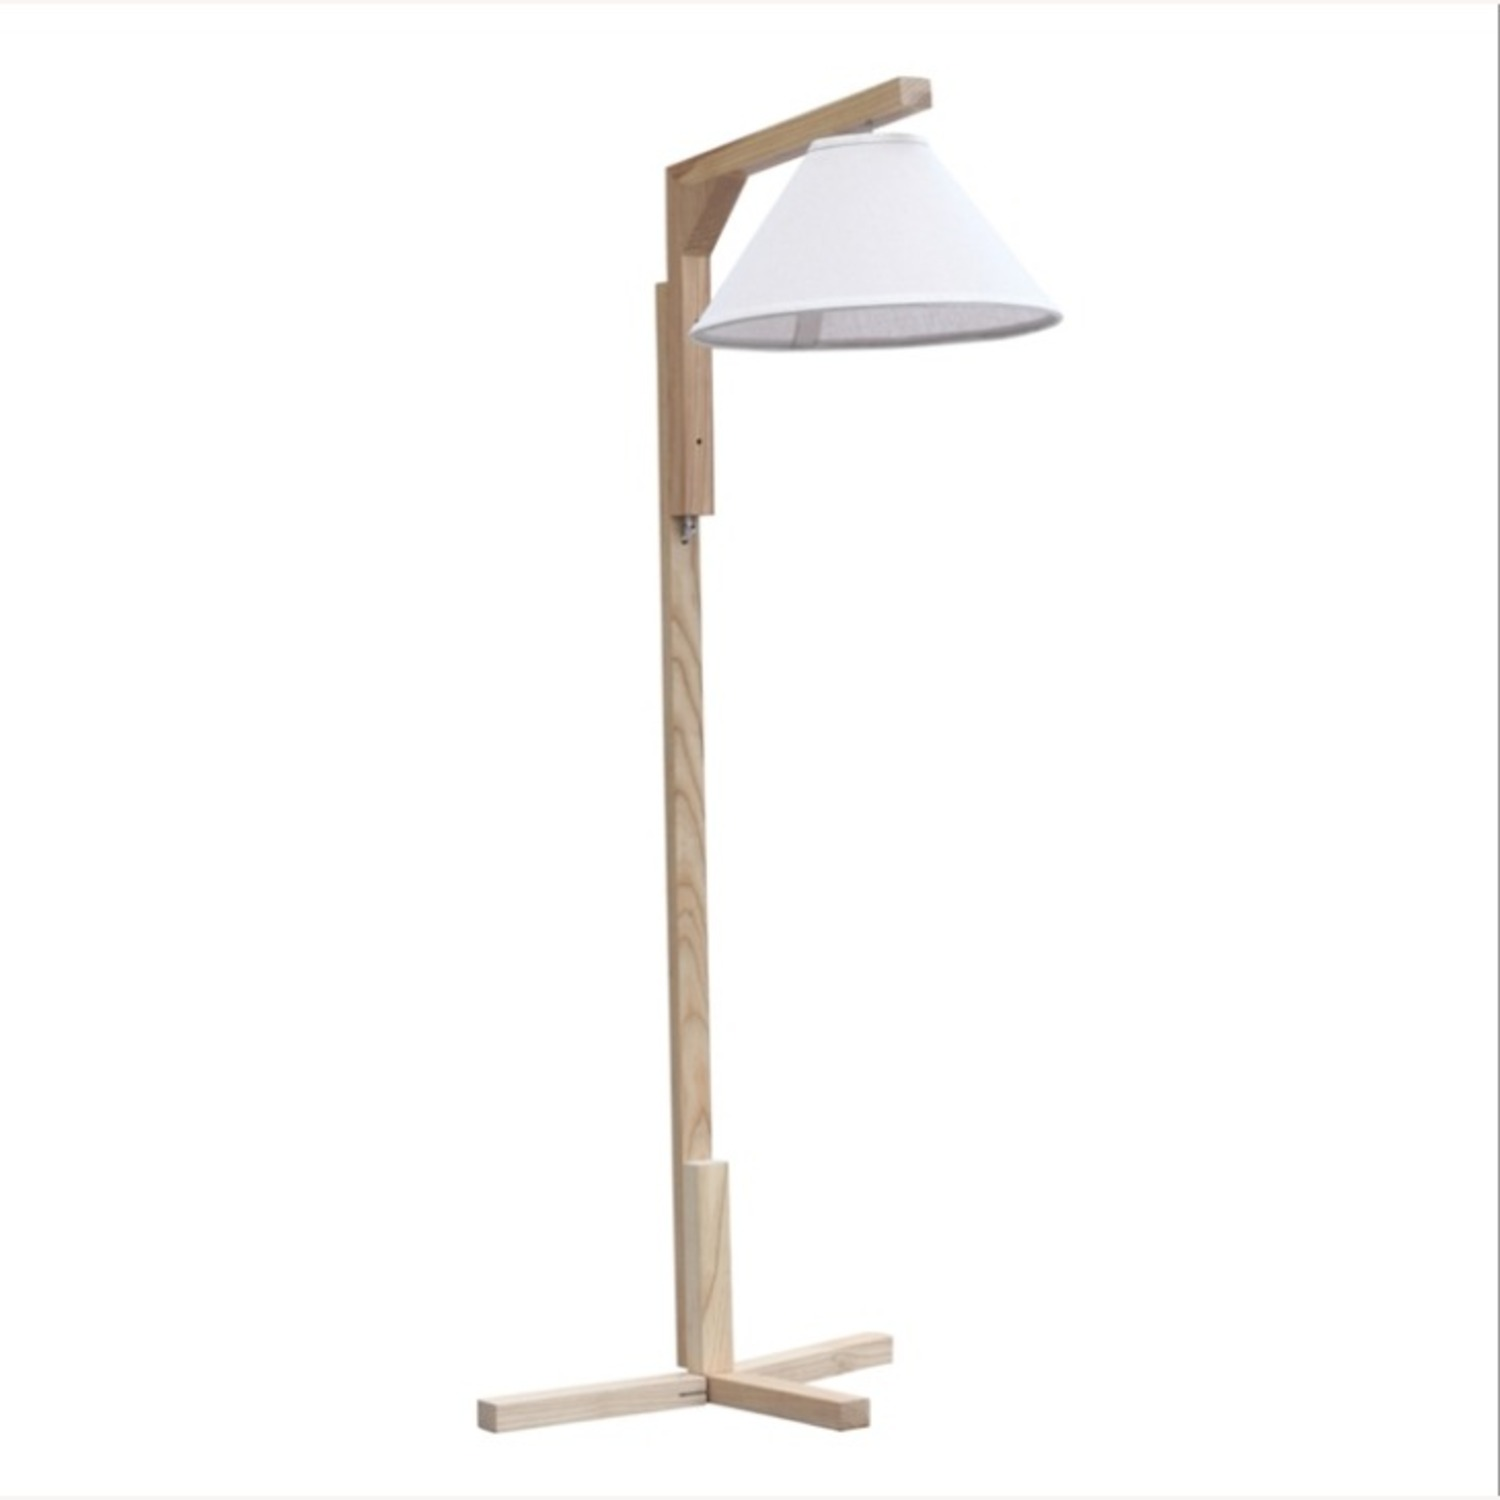 Spiral Floor Lamp In Natural Wood Finish - image-0